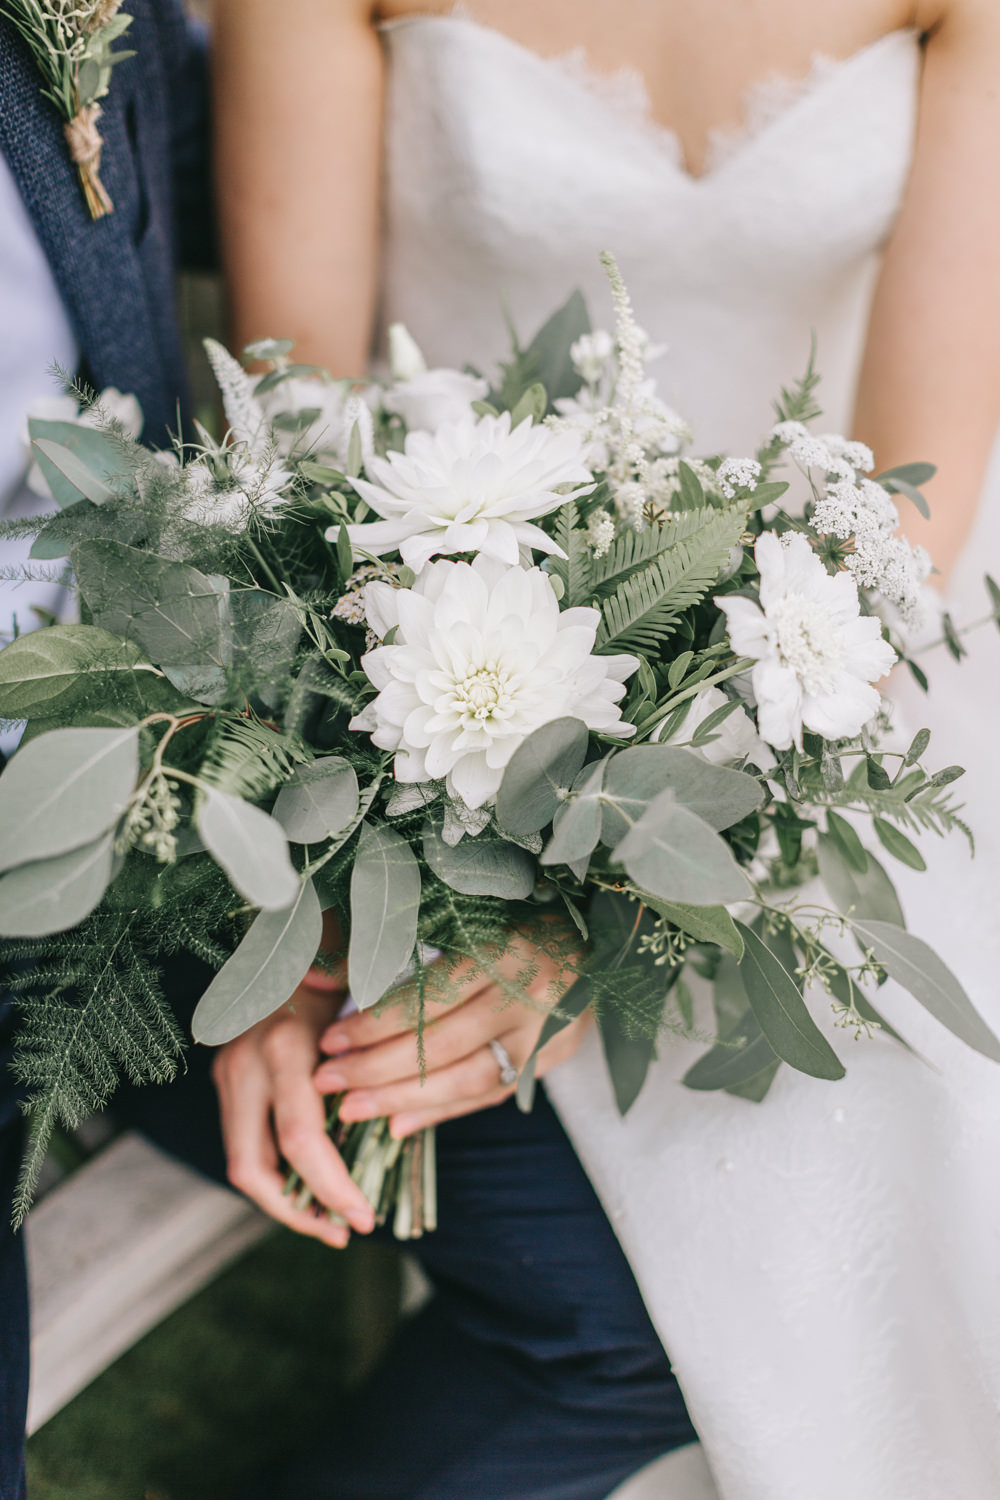 Bouquet Flowers Bride Bridal White Greenery Foliage Sweet Peas Fern Dahlia Healey Barn Wedding Amy Lou Photography